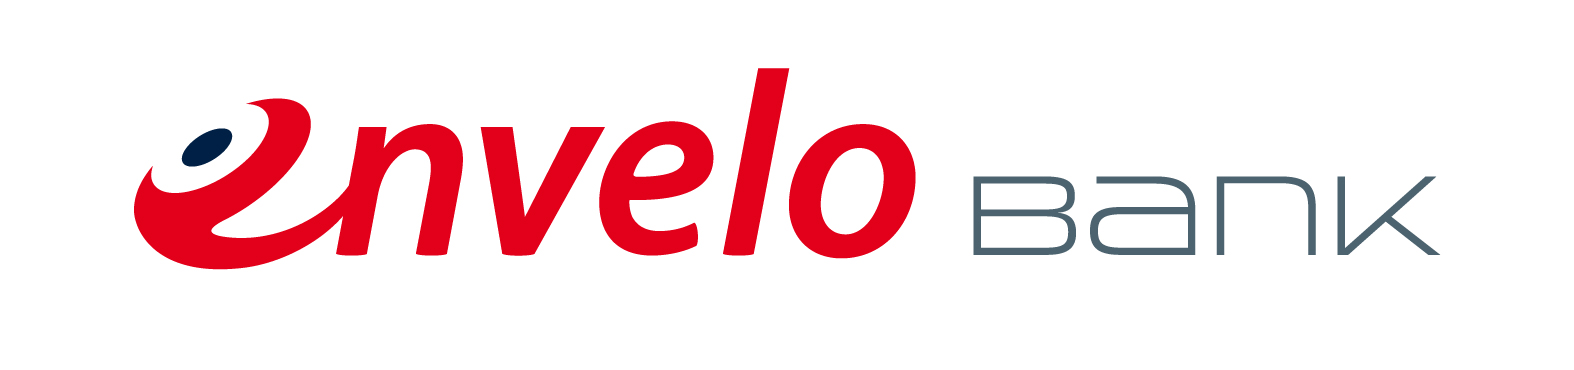 envelo bank logo